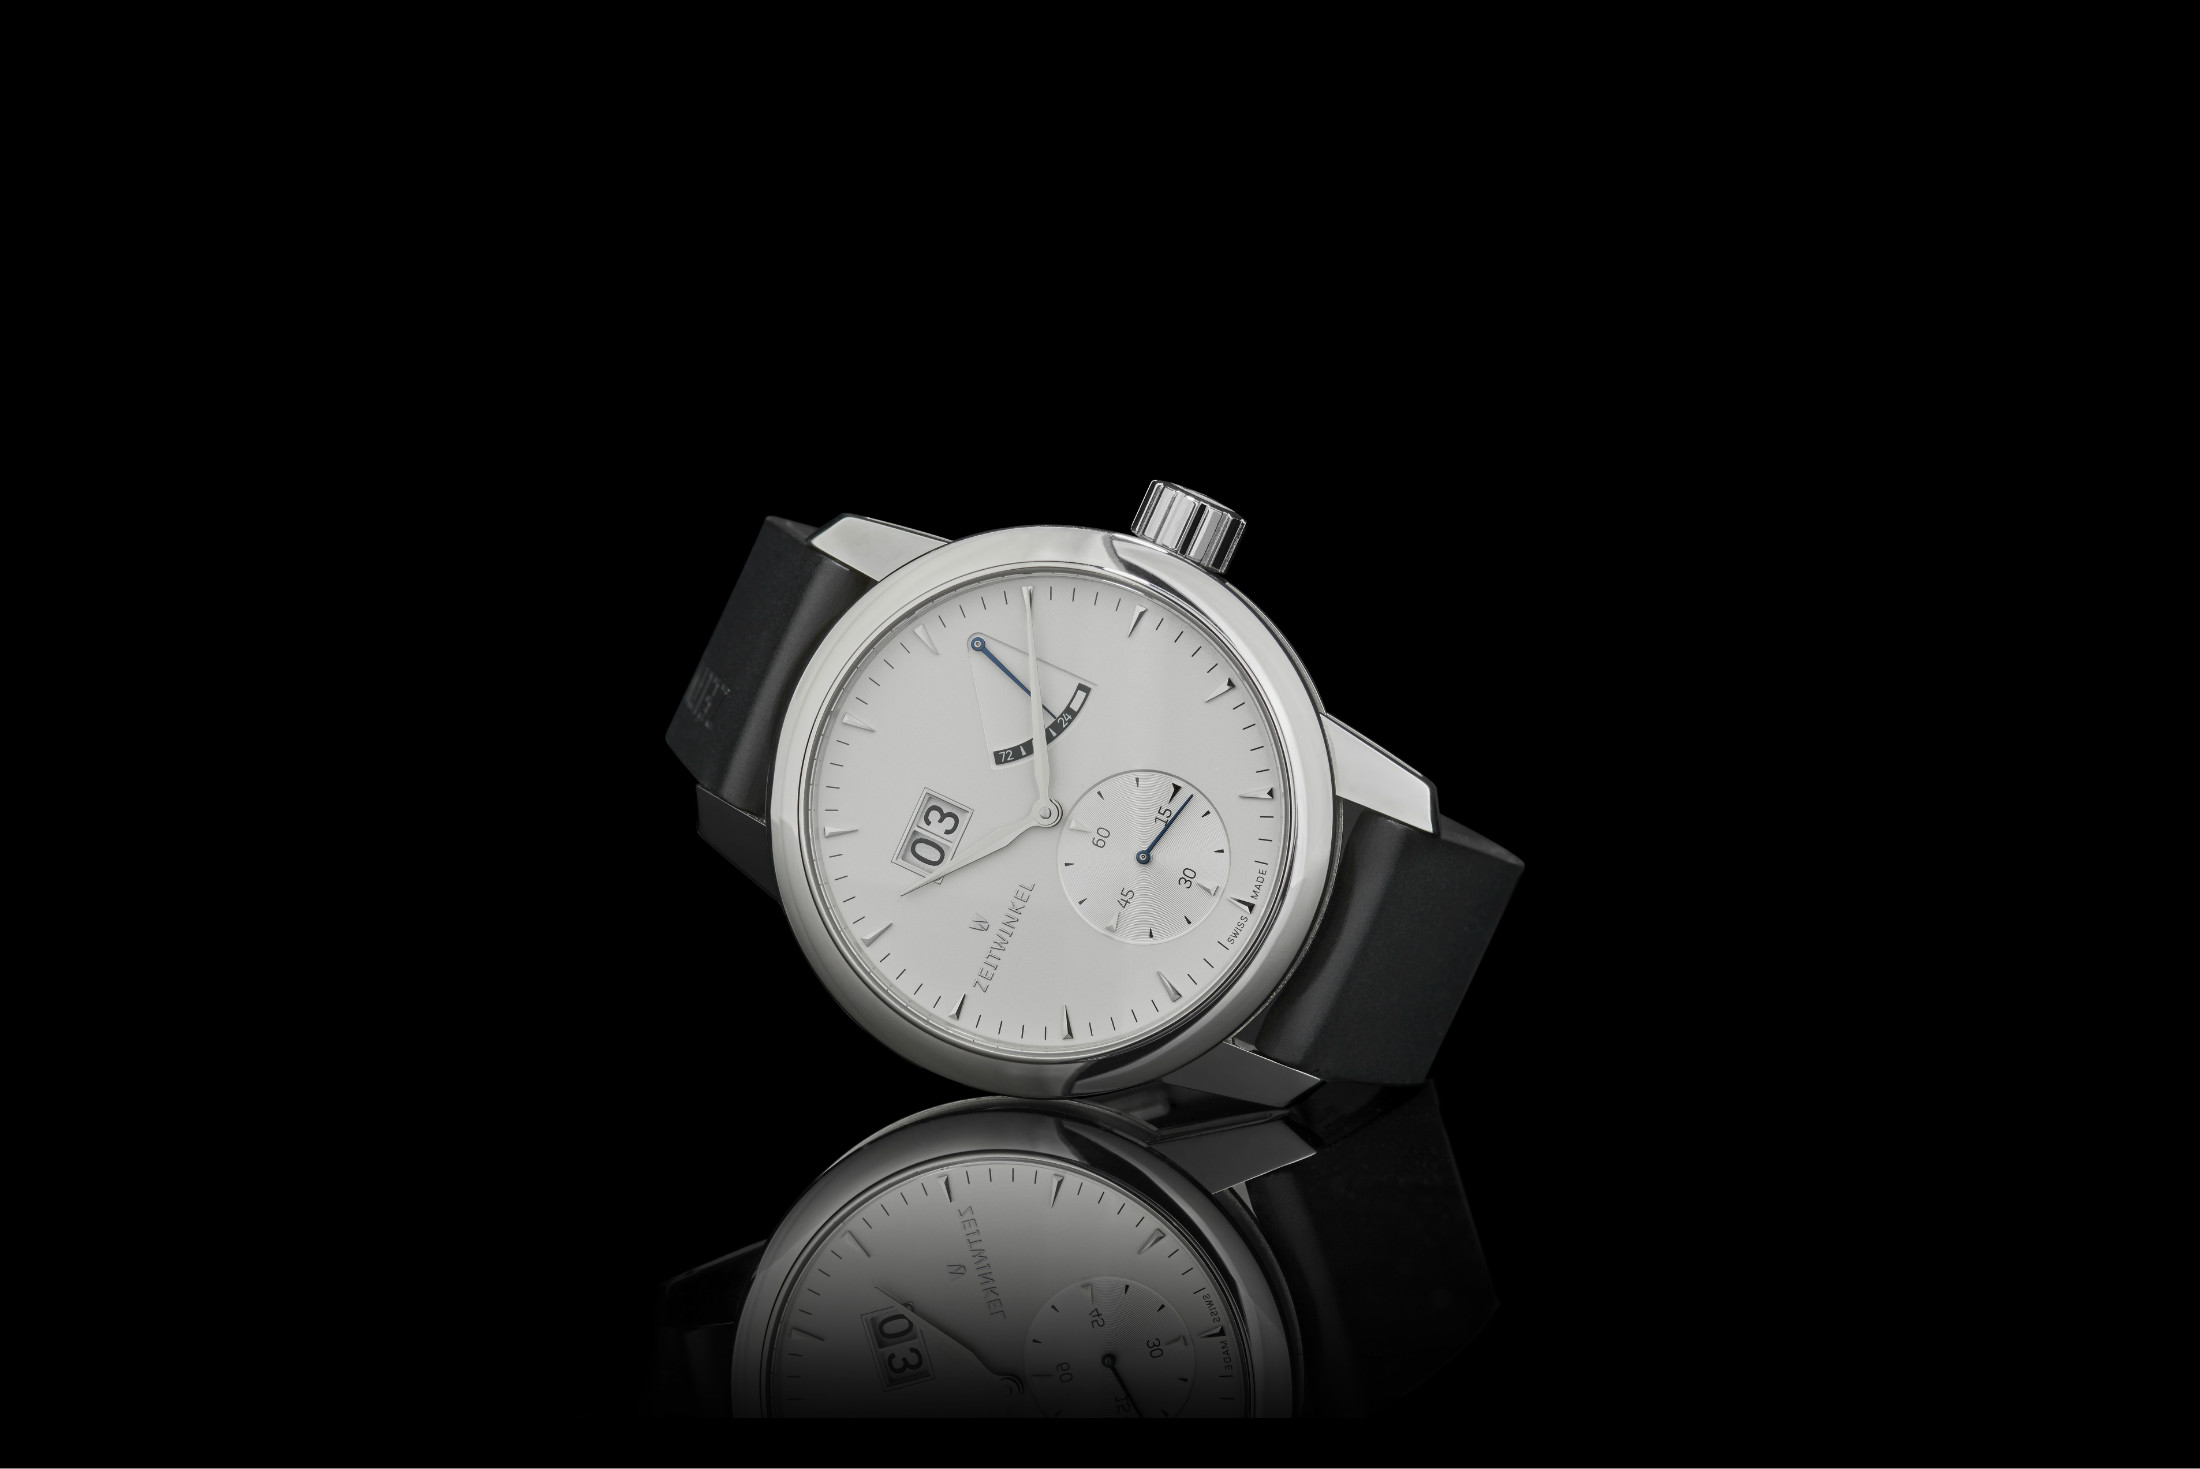 Zeitwinkel 273 watch